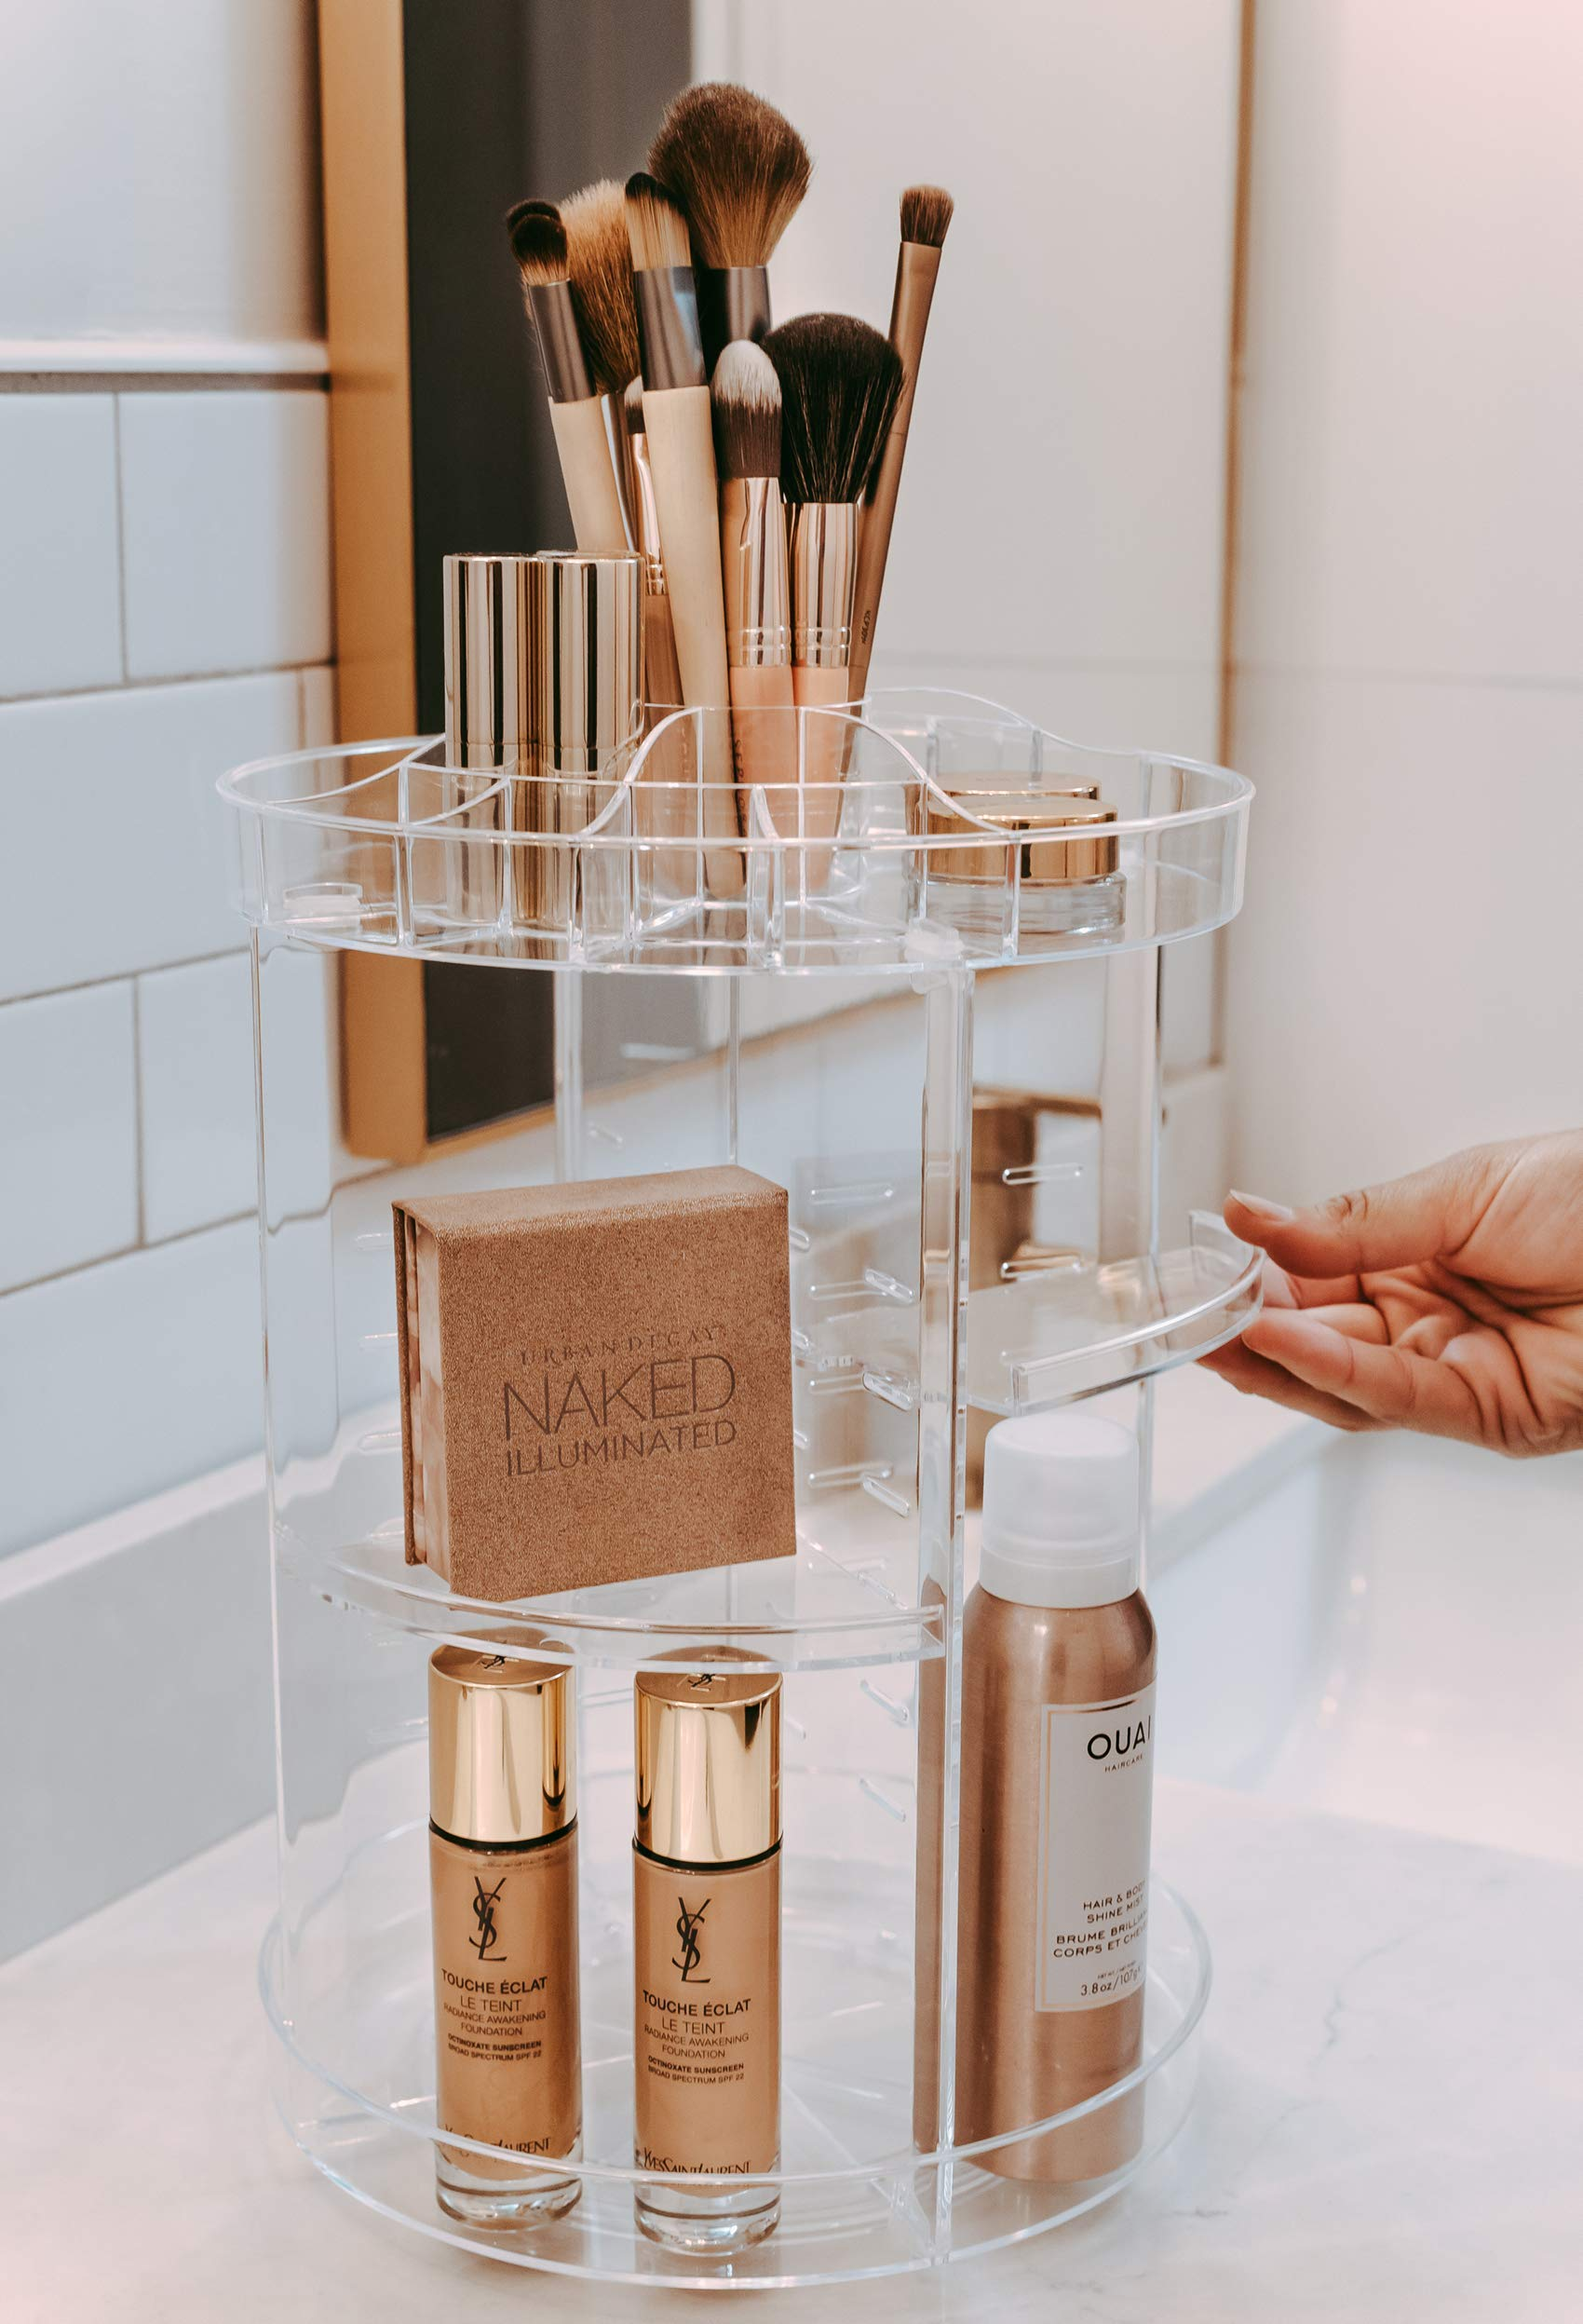 Beauty Shopping Makeup Organizer by Tranquil Abode | Adjustable, Spinning Storage for Skincare, Perfume,